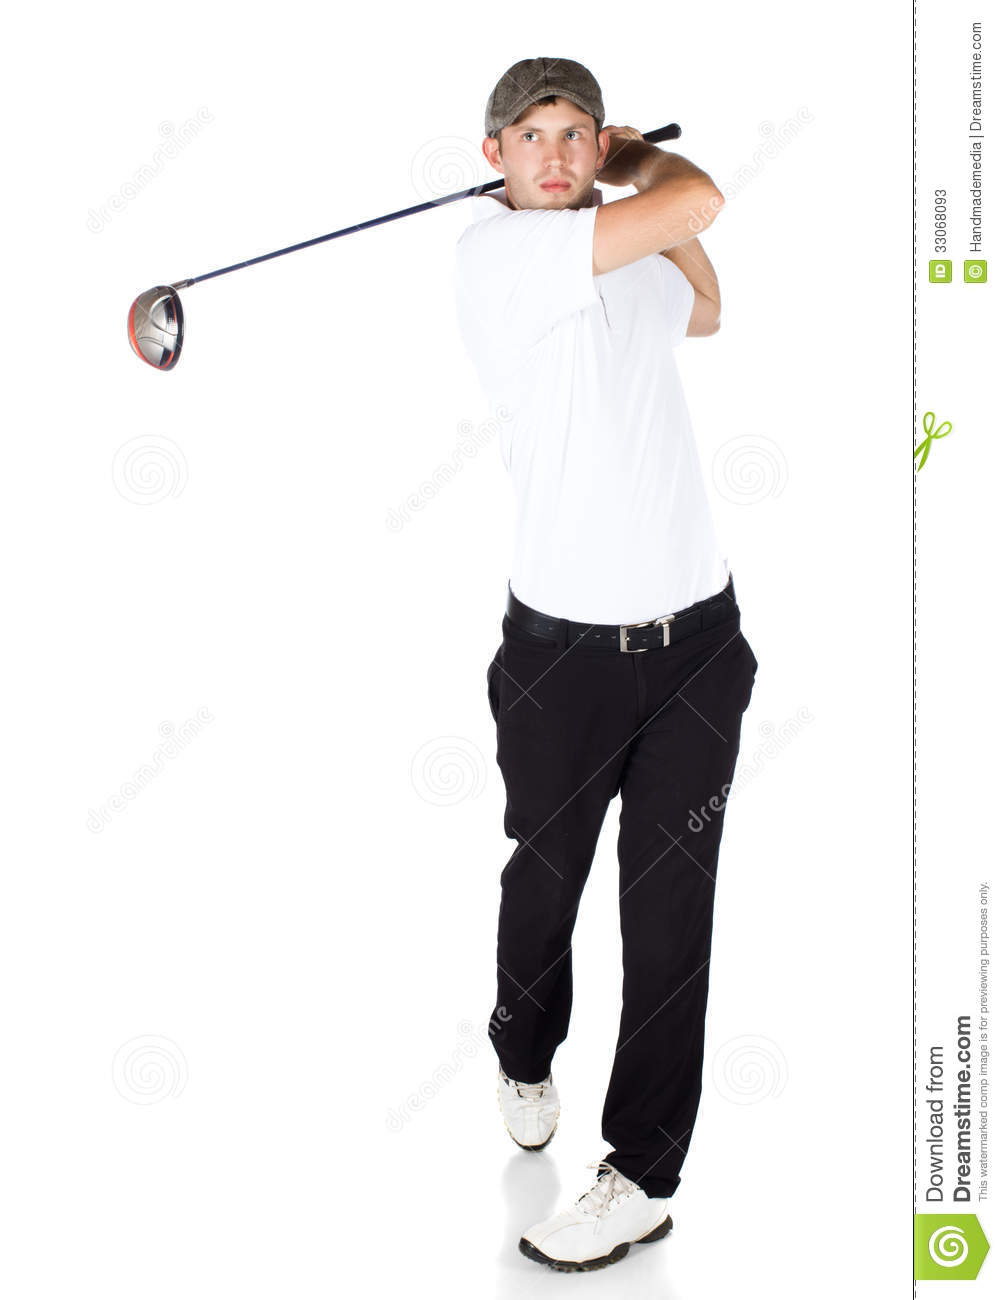 Professional Golf Player Stock Photos - Image: 33068093